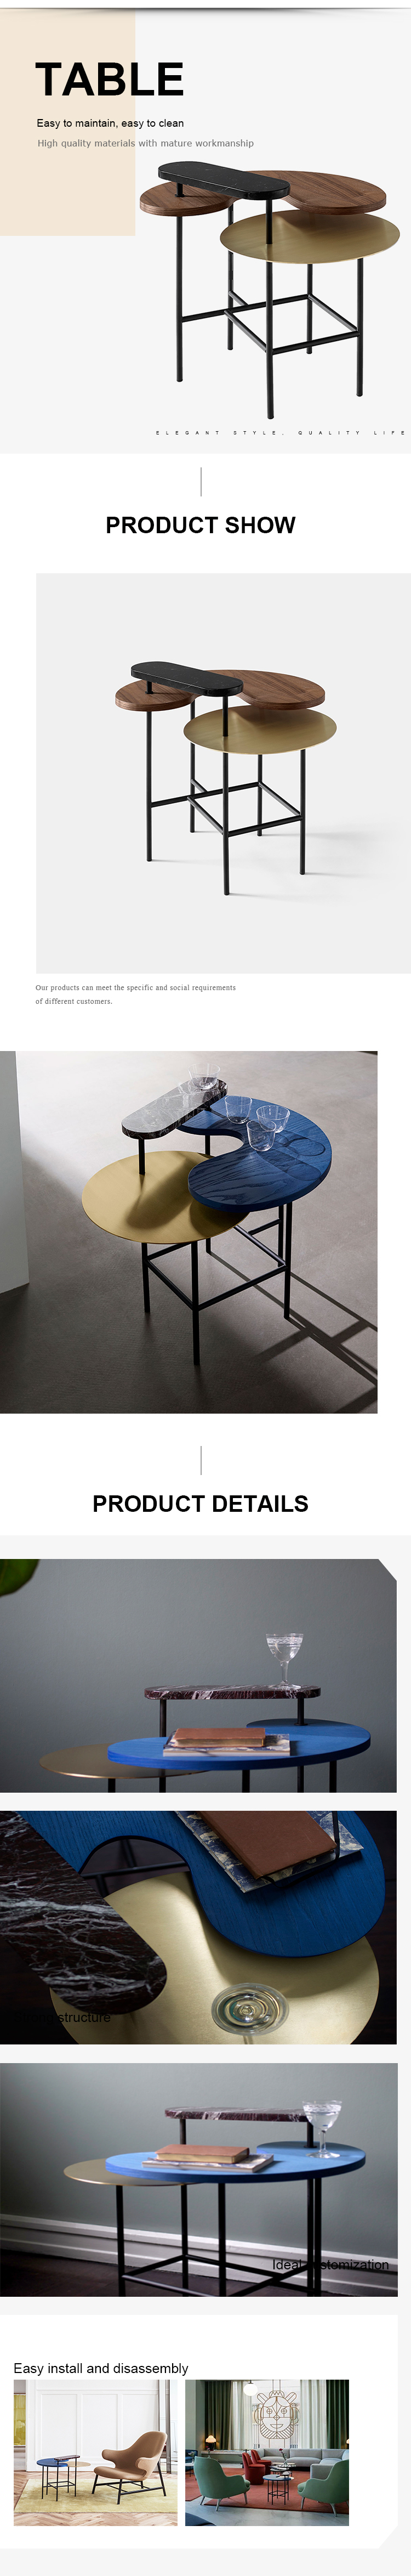 Industriel Table Basse Palette modern design table jaime hayon palette side table - buy palette side  table,chair side table,multi functional coffee table product on alibaba